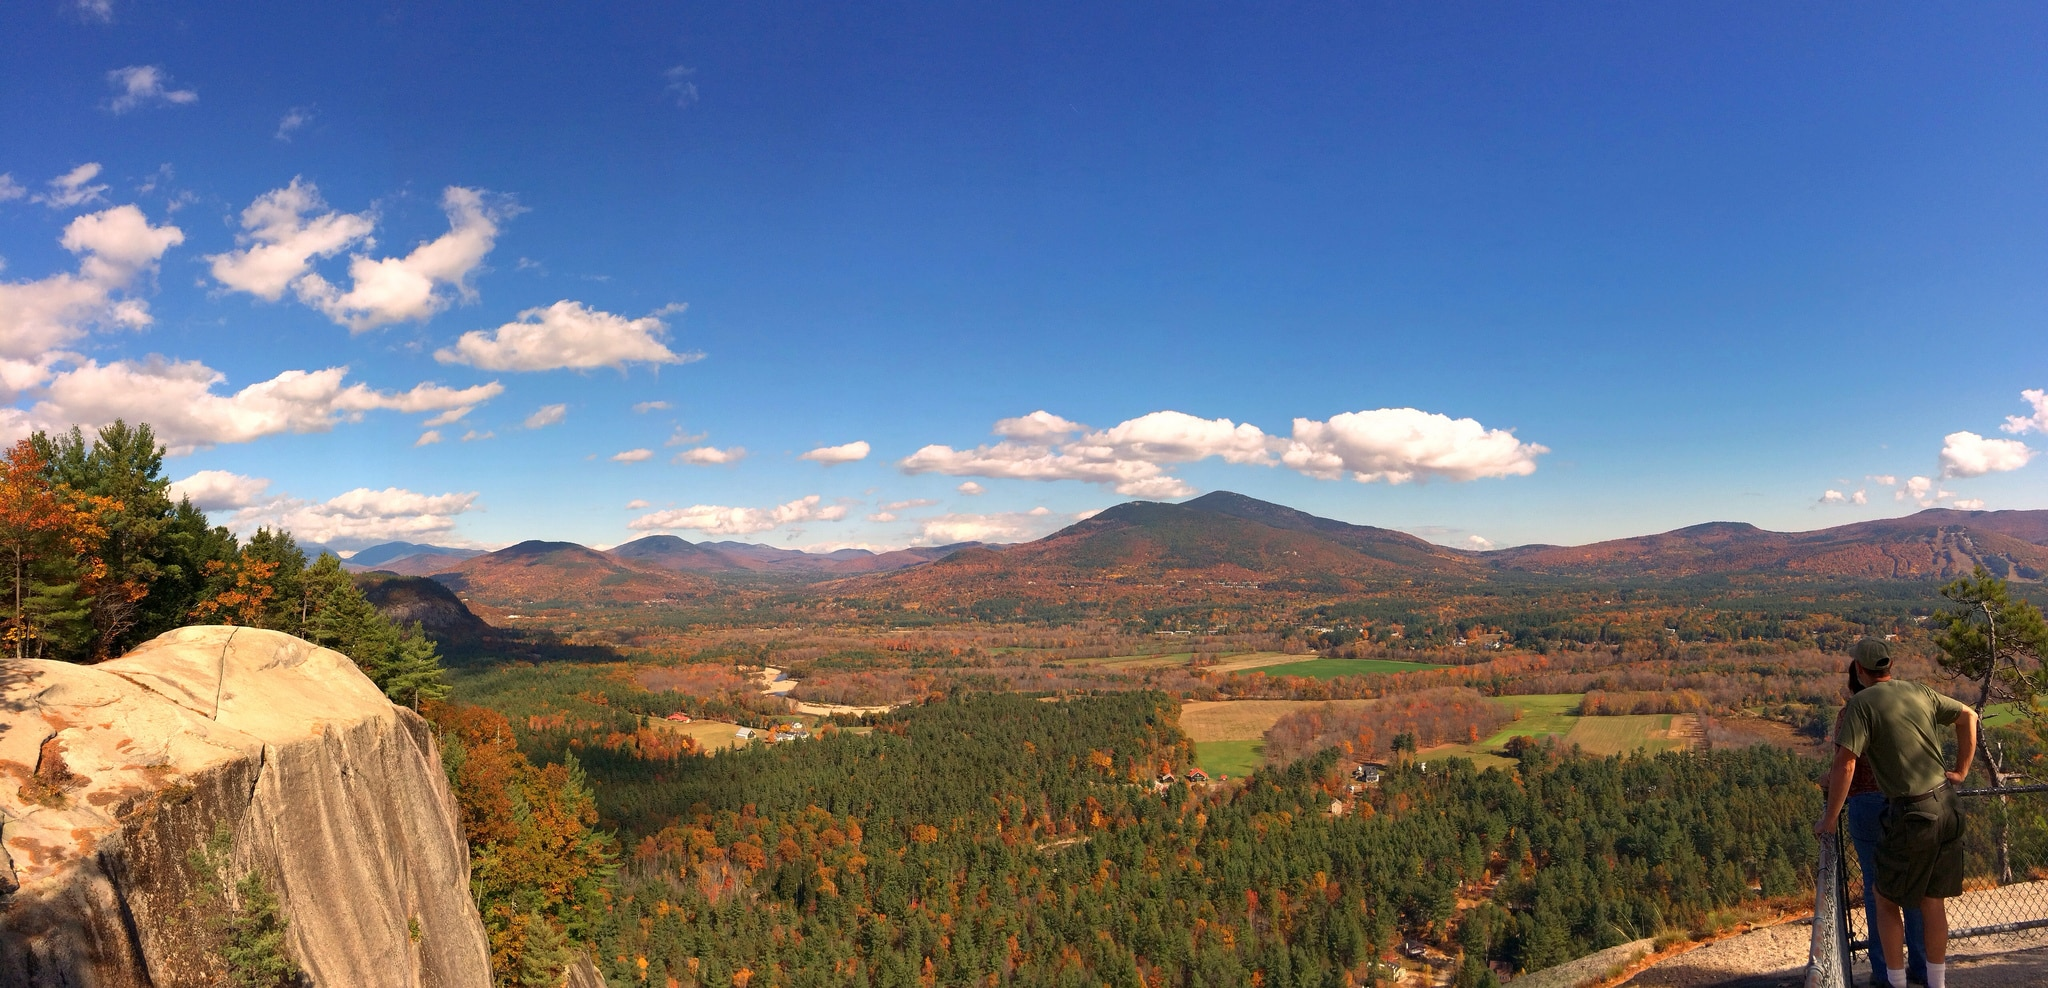 Photo Credit: VisitWhiteMountains.com